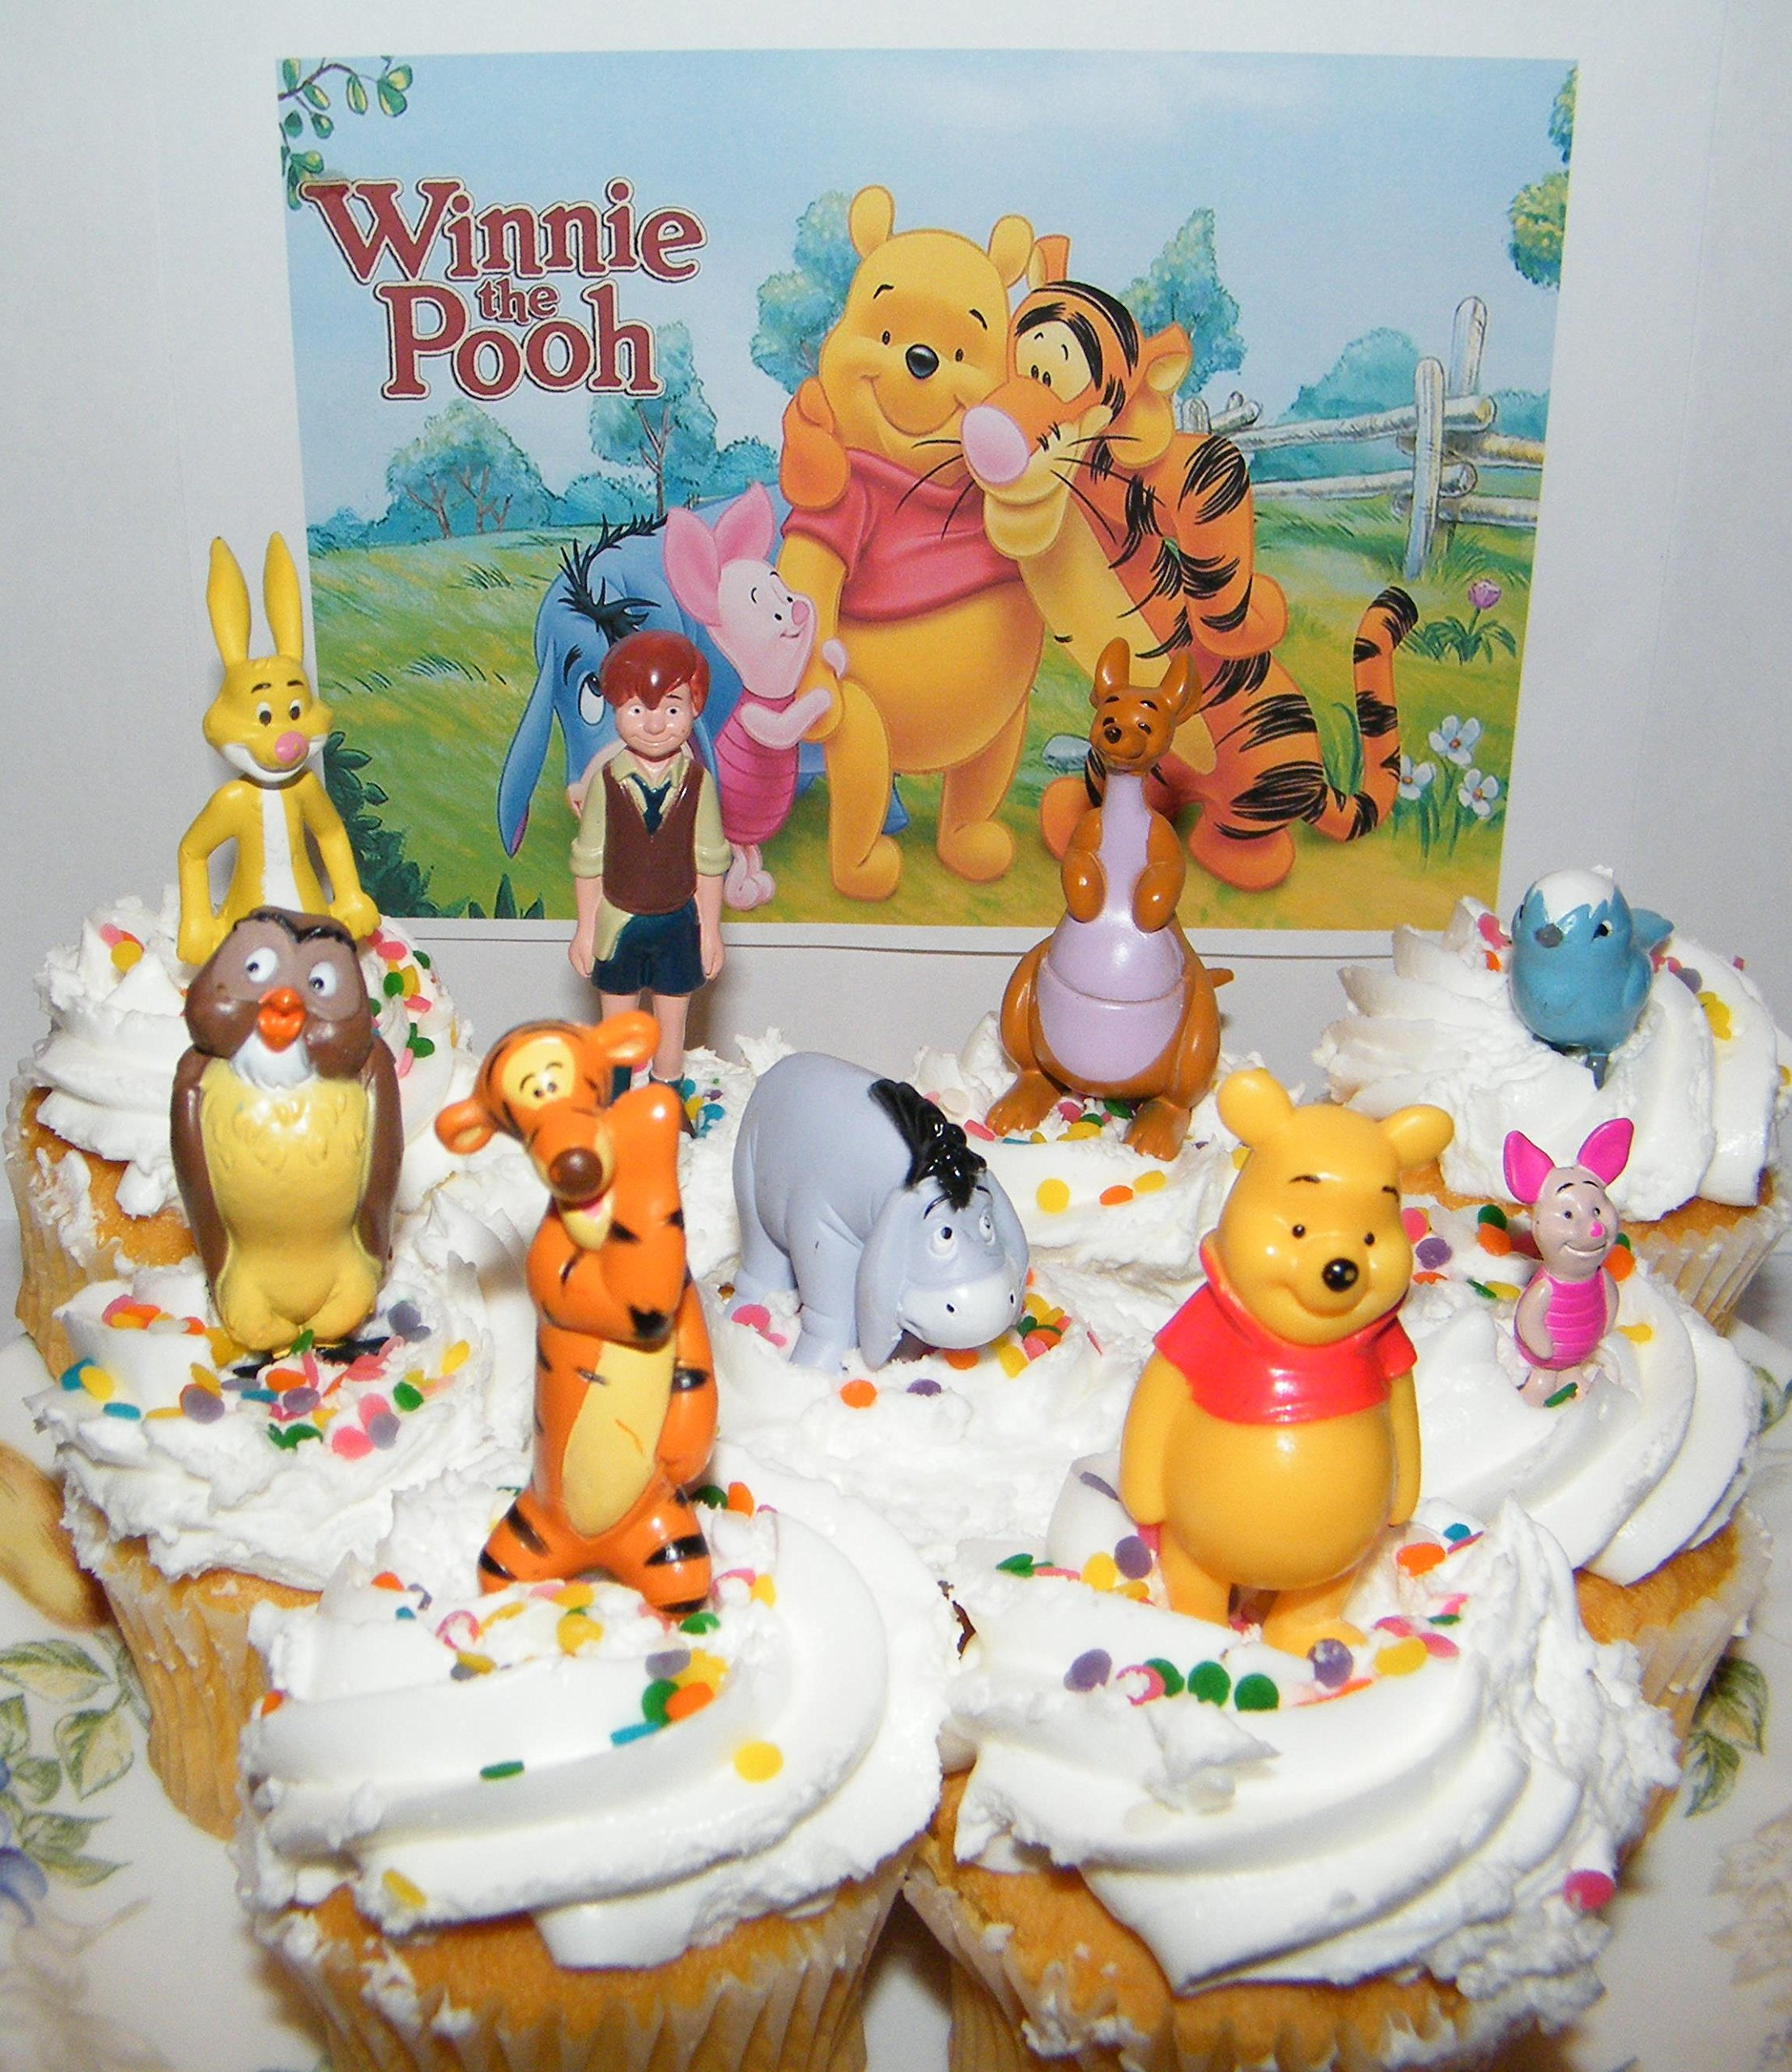 Disney Winnie the Pooh Deluxe Mini Cake Toppers Cupcake Decorations Set of 9 Figures with the Pooh, Tigger, Owl, Chistopher Robin and More!